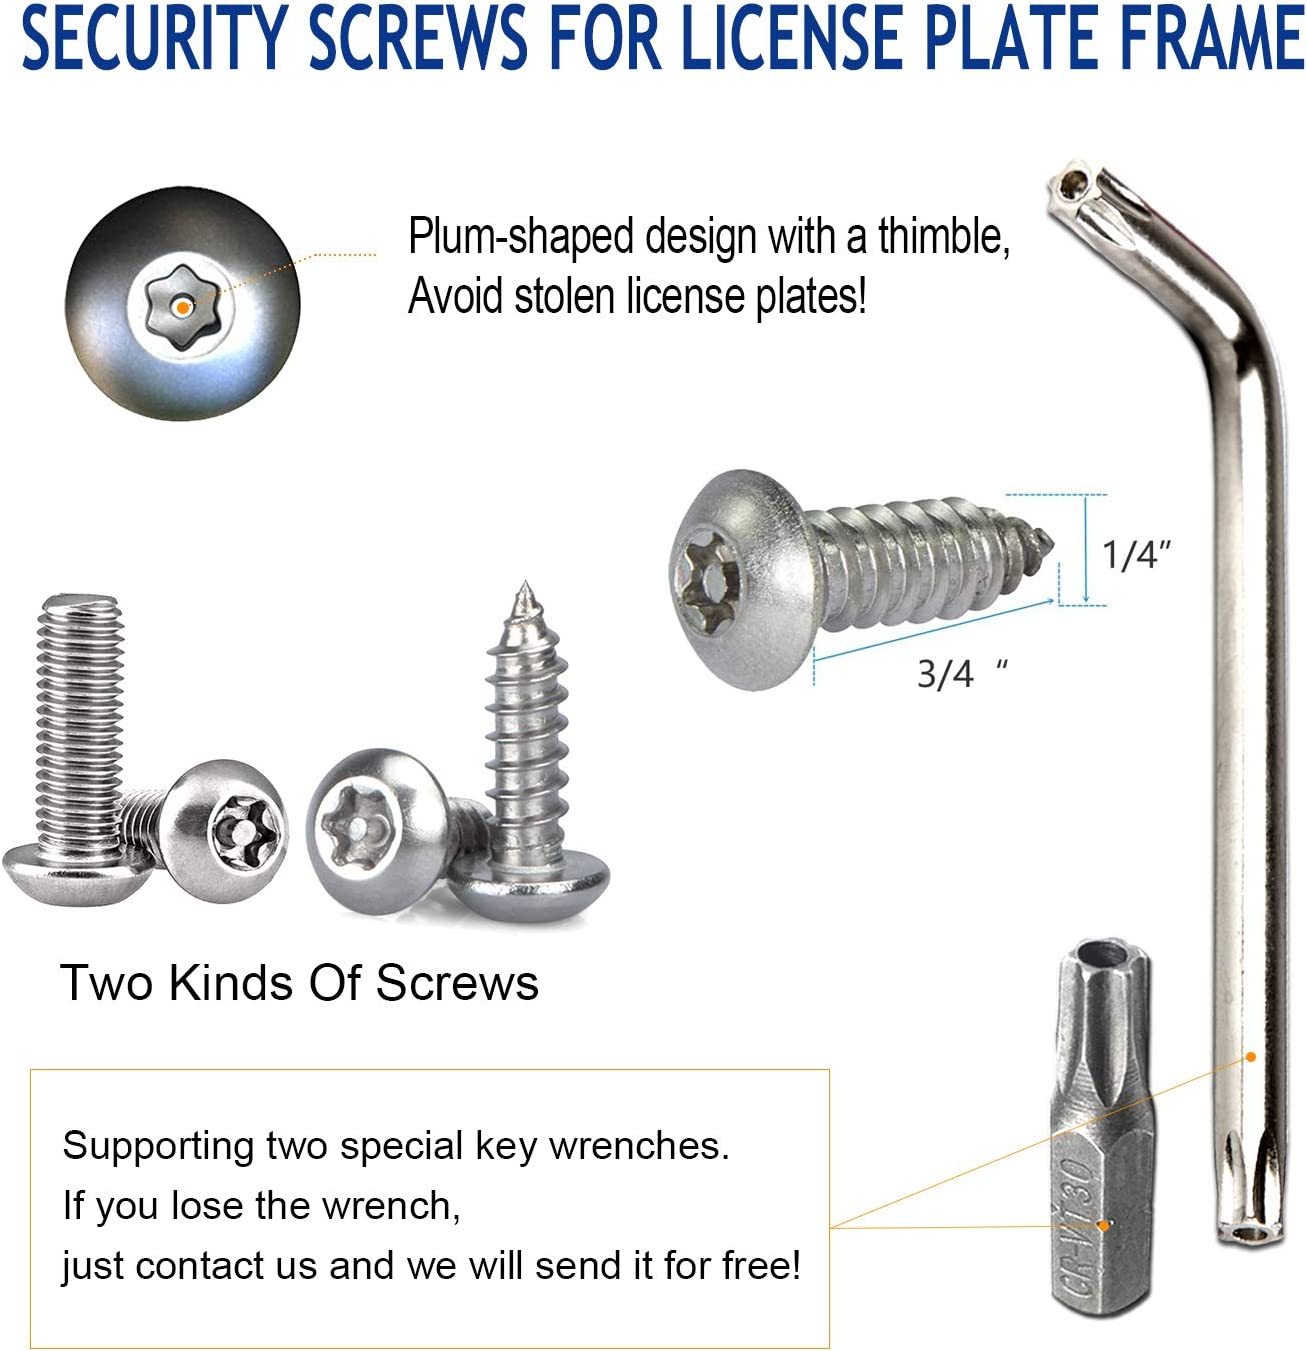 Anti Theft License Plate Screws- Stainless Steel Bolts Fasteners Kits Lock Car Tag Frame Holder Security Screw Set,Rust Proof,Chrome Screw Caps Cover M6 Tamper Resistant Mounting Hardware,1//4